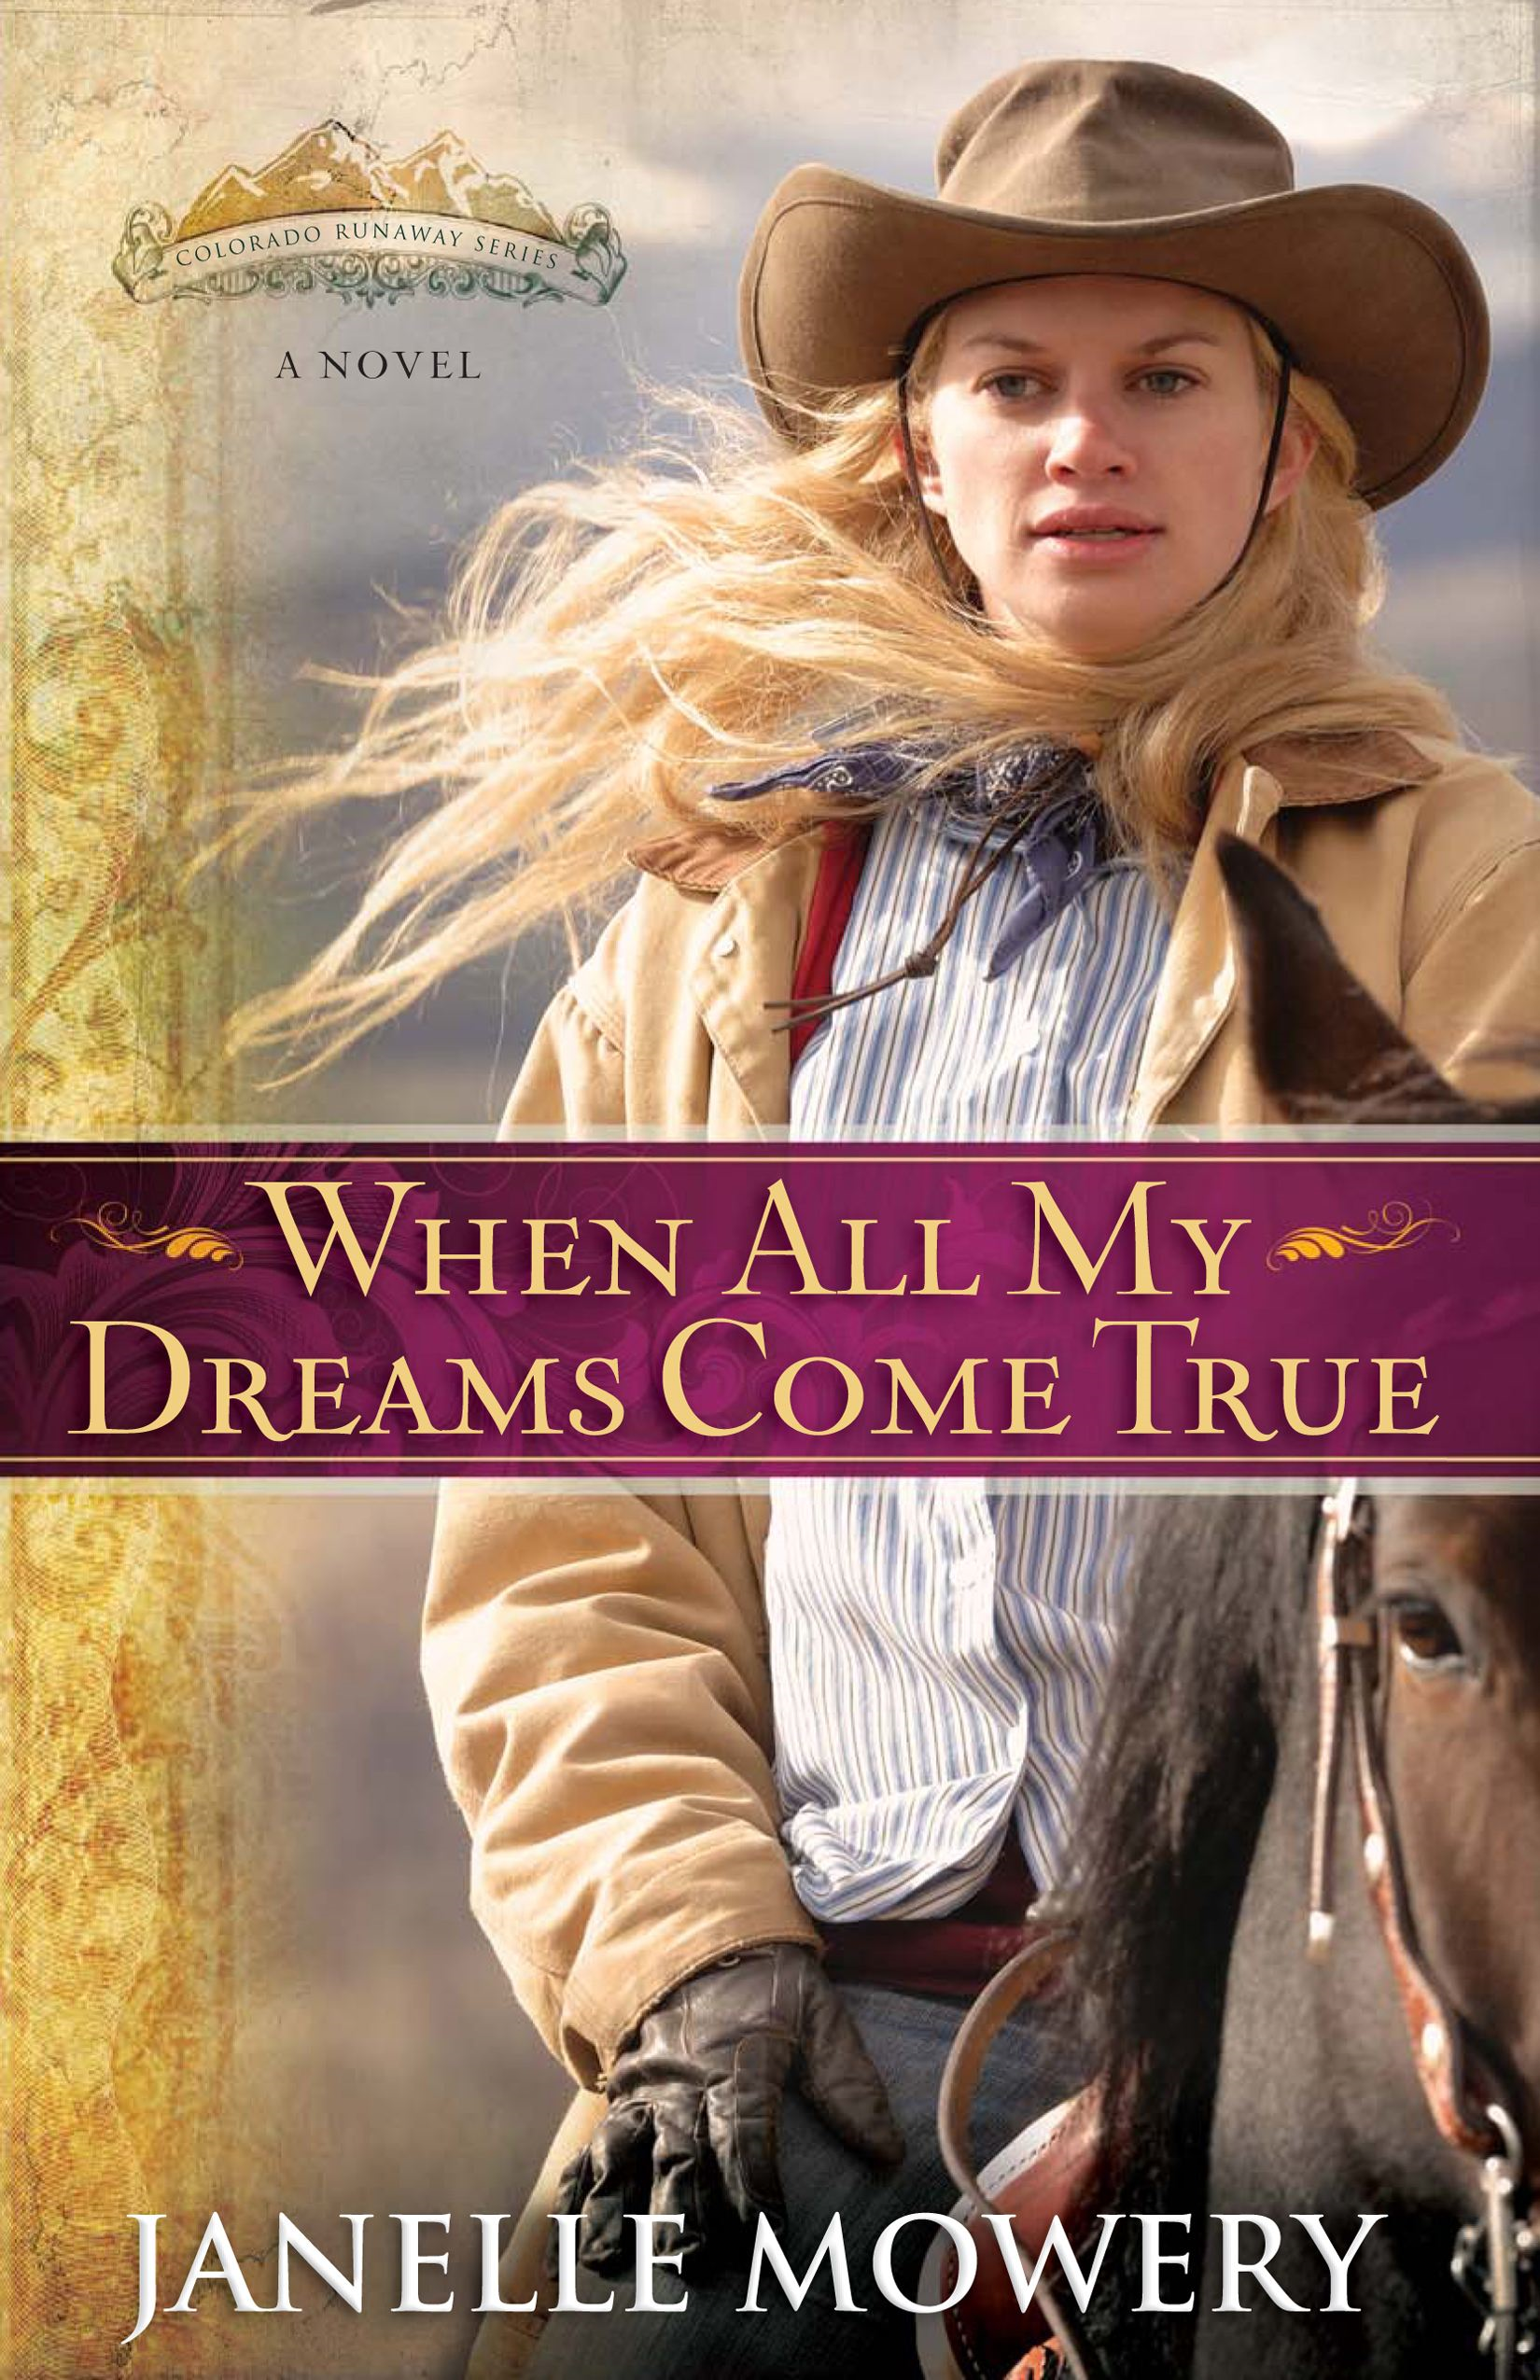 When All My Dreams Come True By: Janelle Mowery